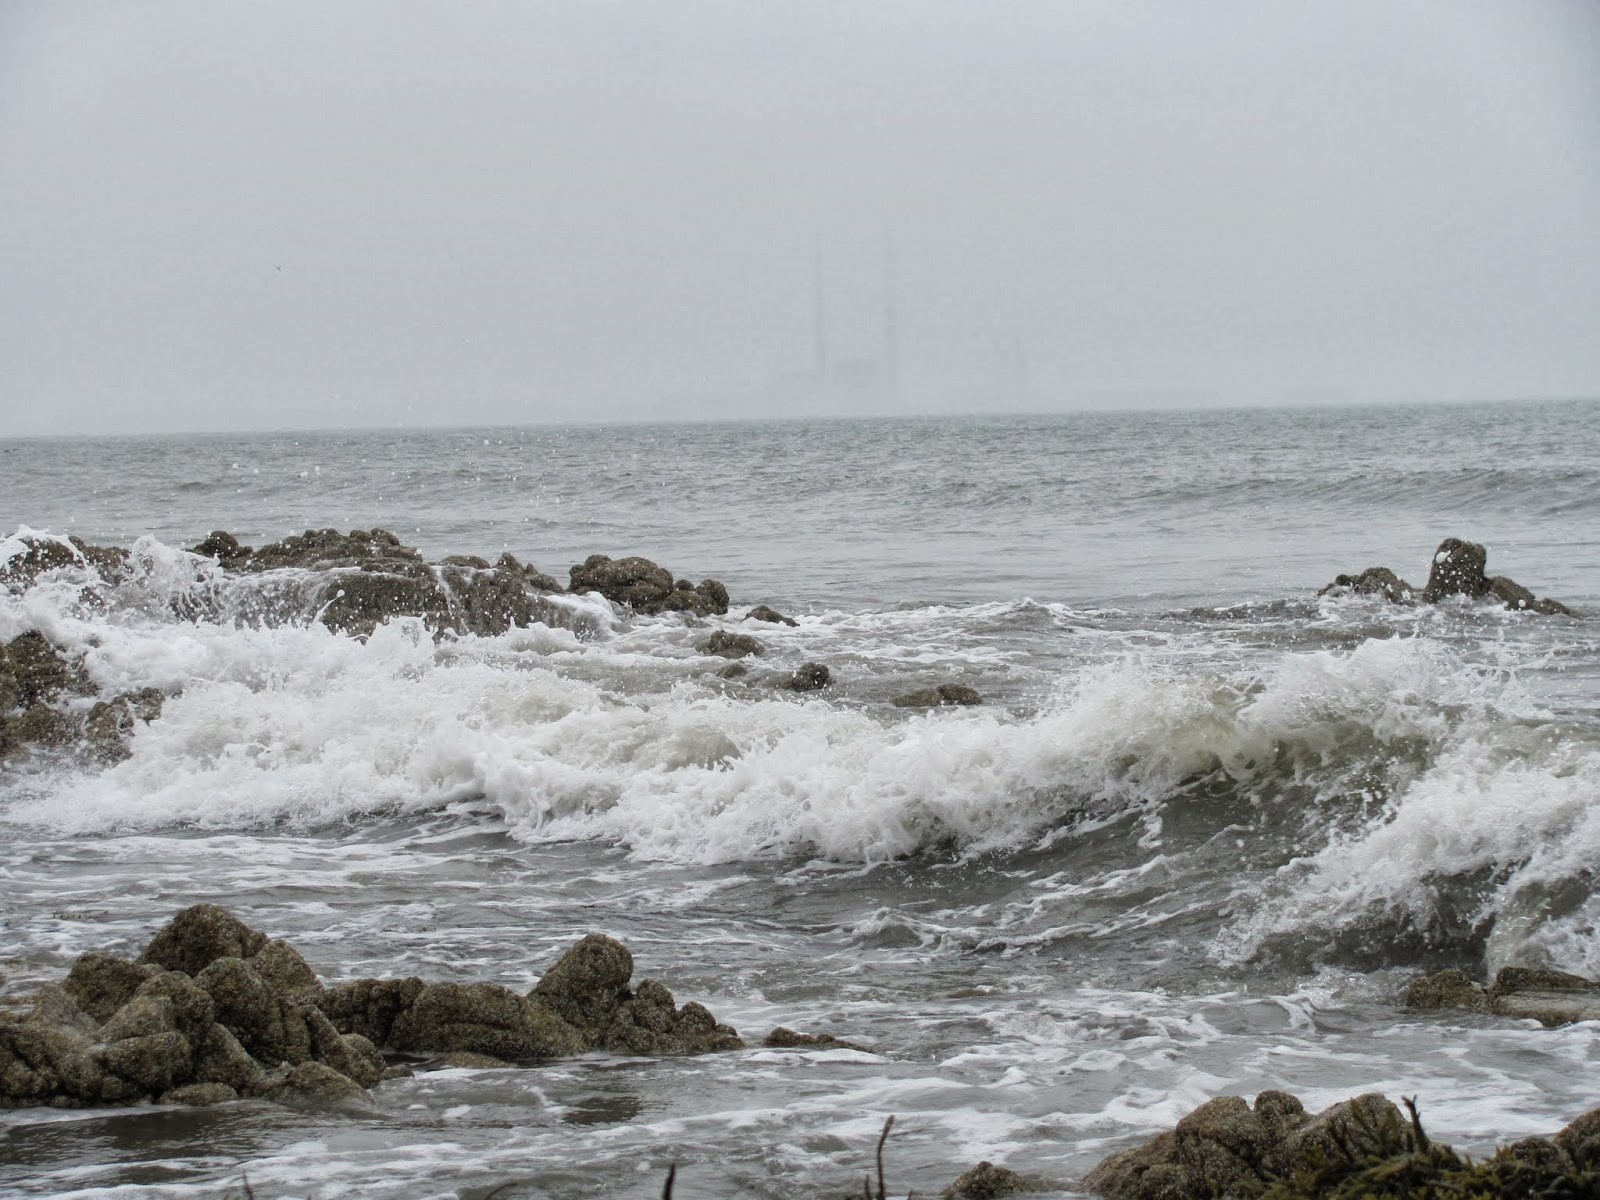 Waves crash from the grey waters of Dublin Bay at Seapoint Beach, Dun Laoghaire, Co. Dublin, Ireland